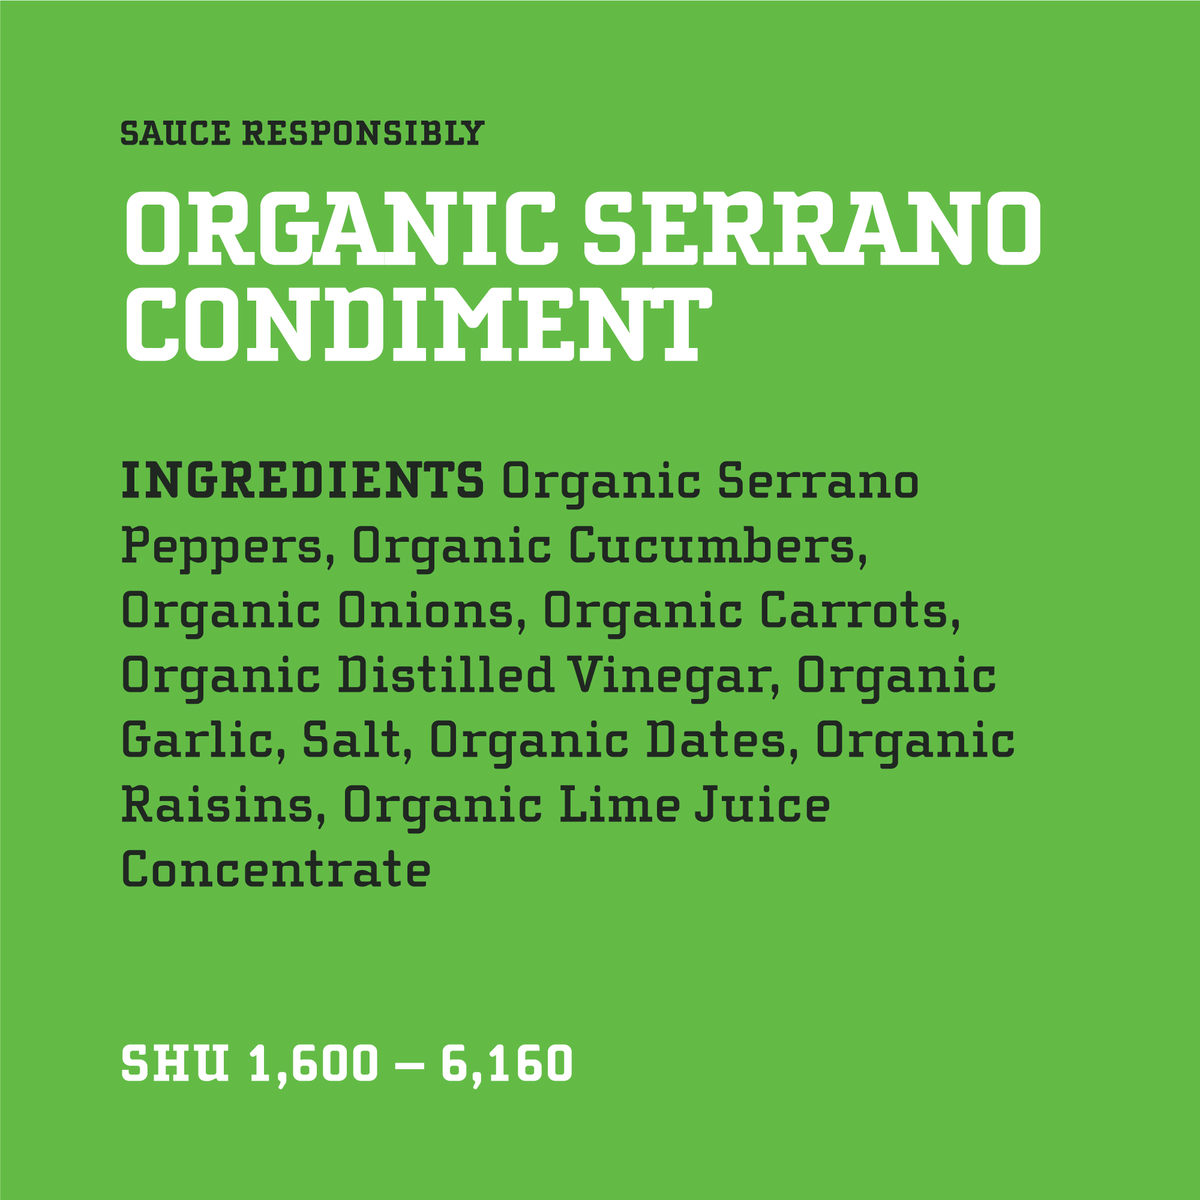 Organic Serrano Condiment Multipacks